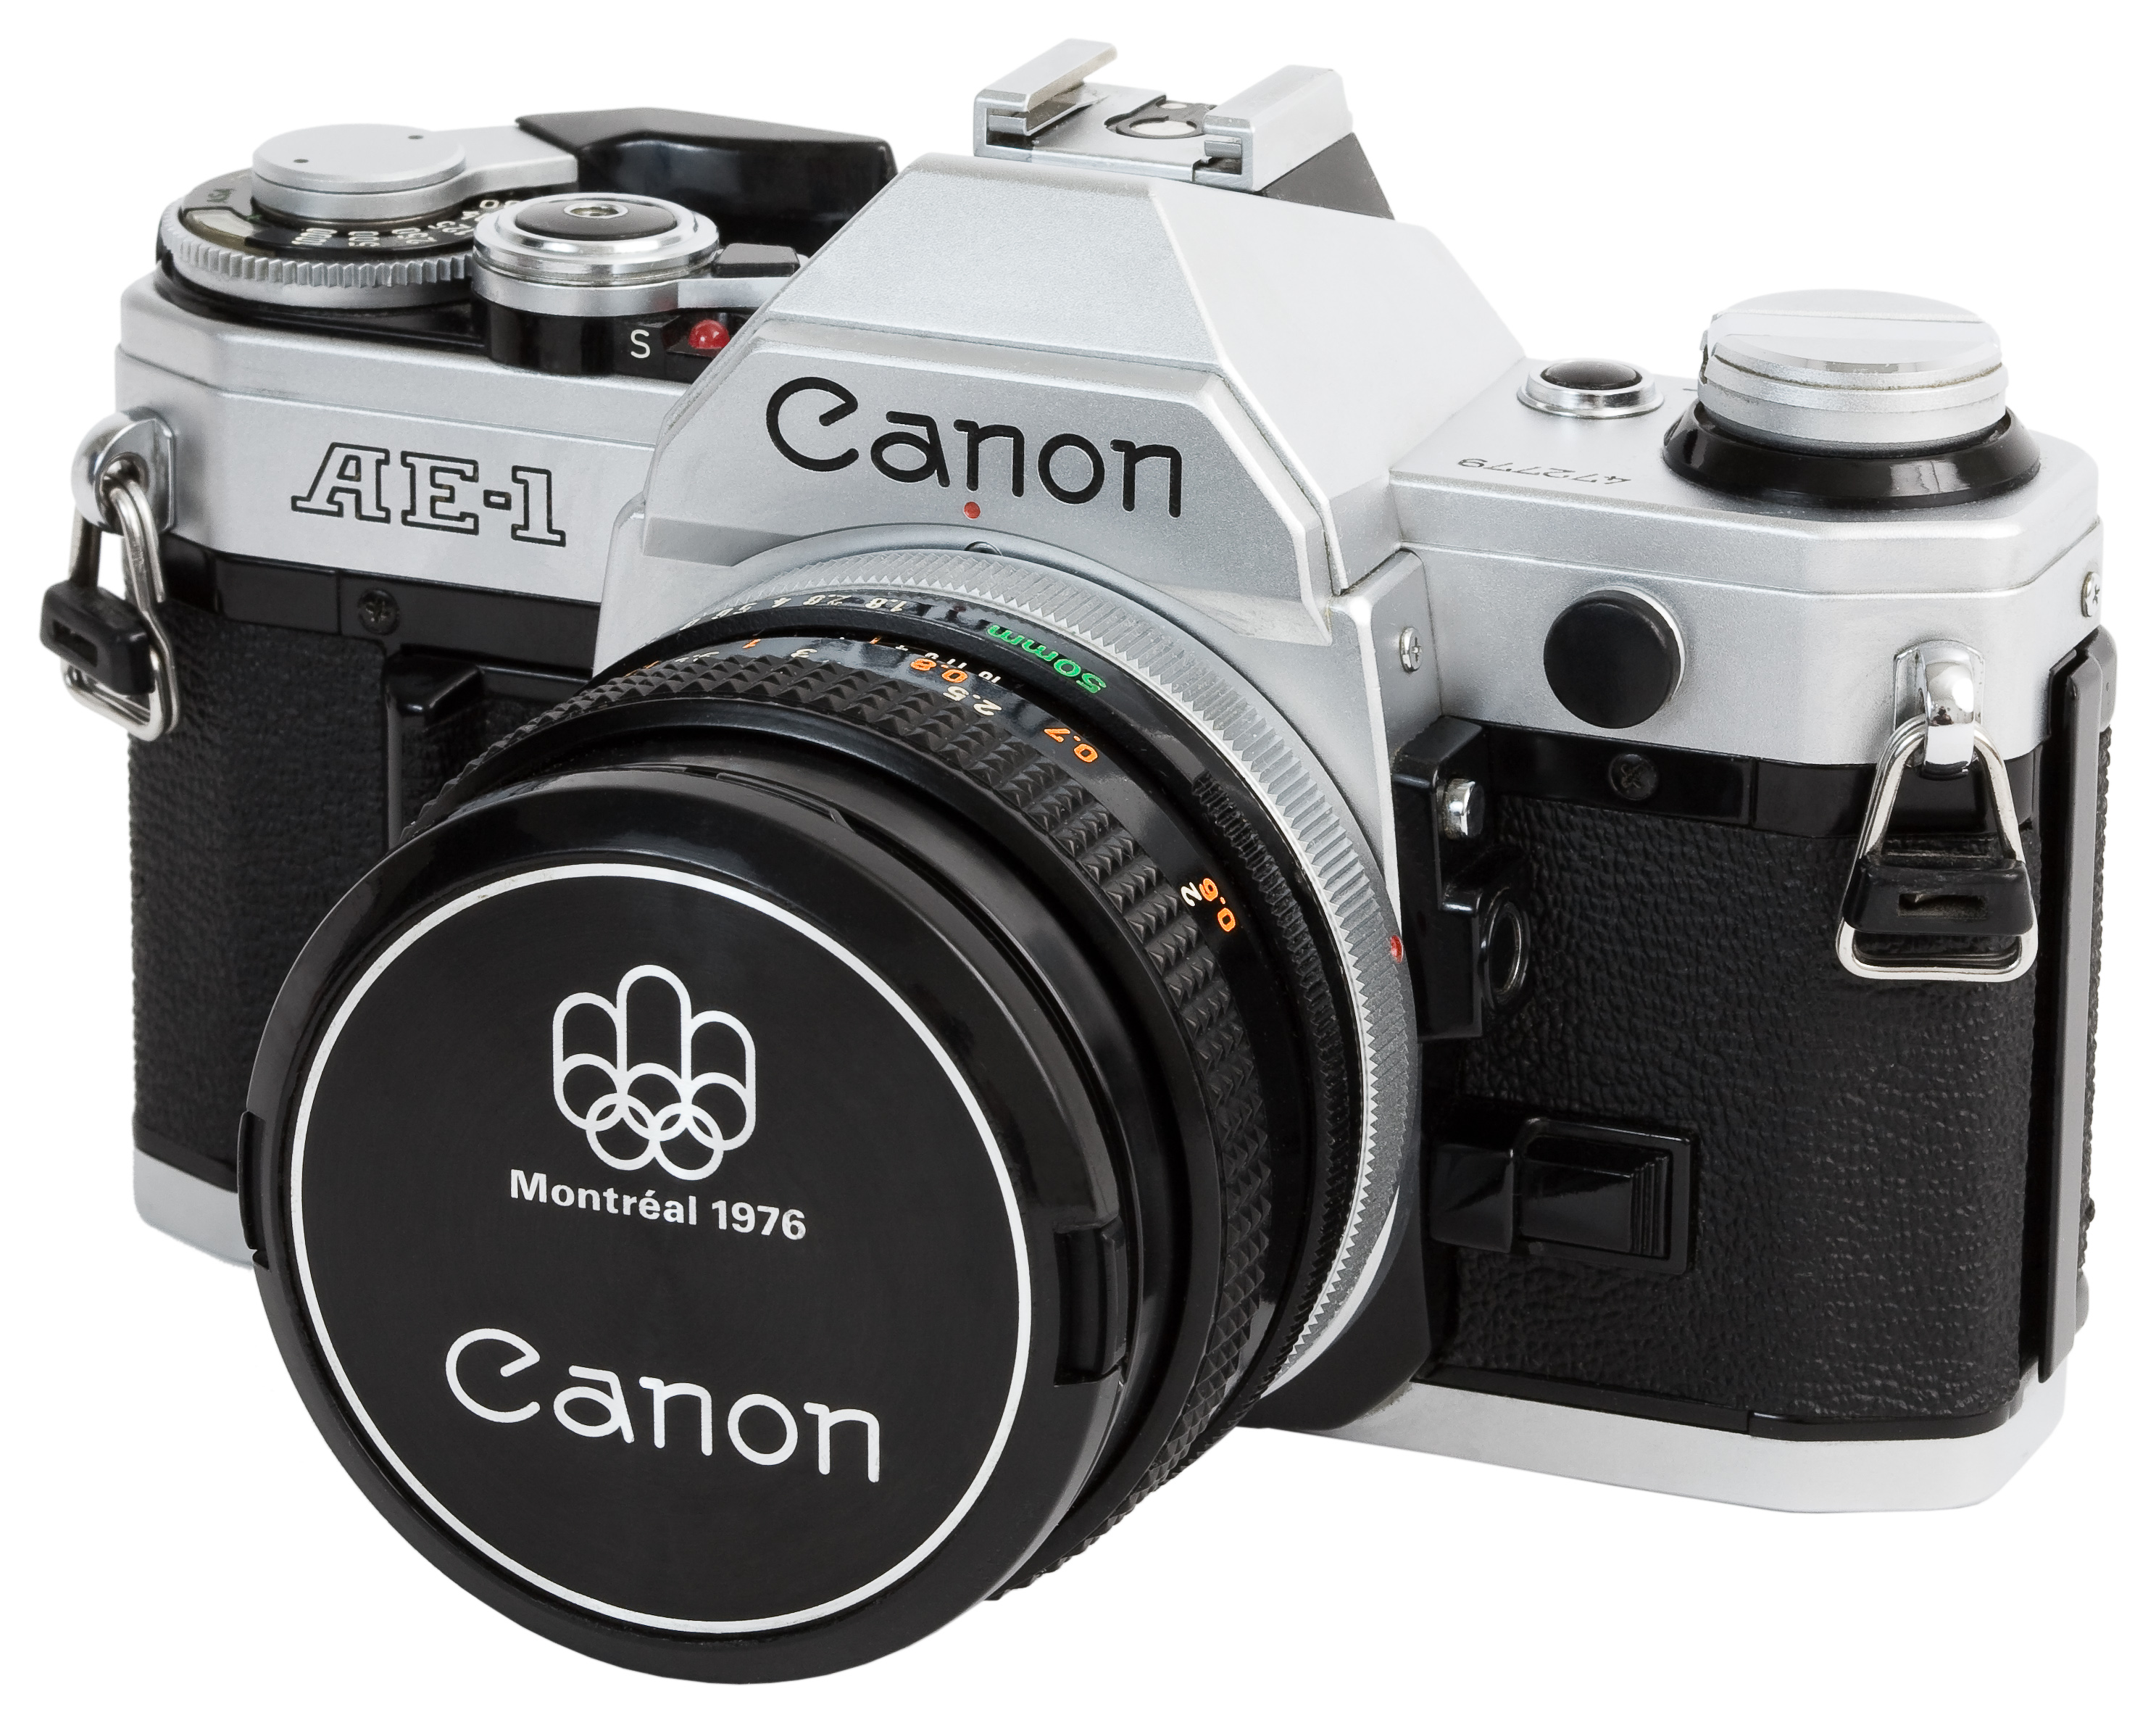 Canon AE-1 with kit 50mm f/1.8 lens...great photography holiday gift! | https://www.roseclearfield.com